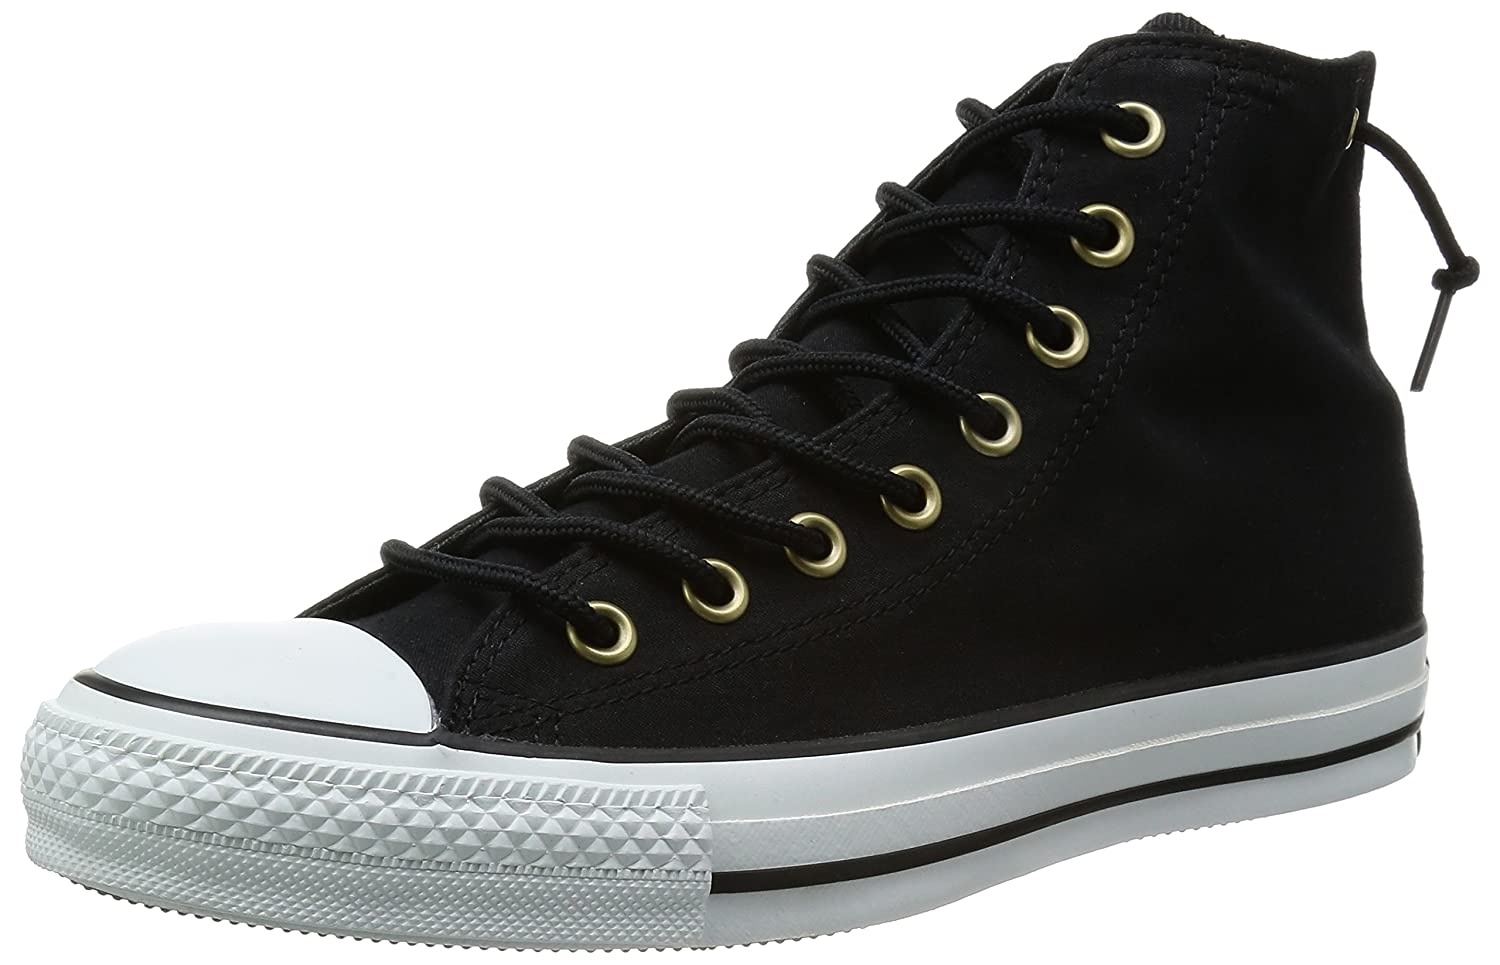 Amazon.co.jp: [コンバース] CONVERSE ALL STAR MODSCOAT HI: シューズ&バッグ